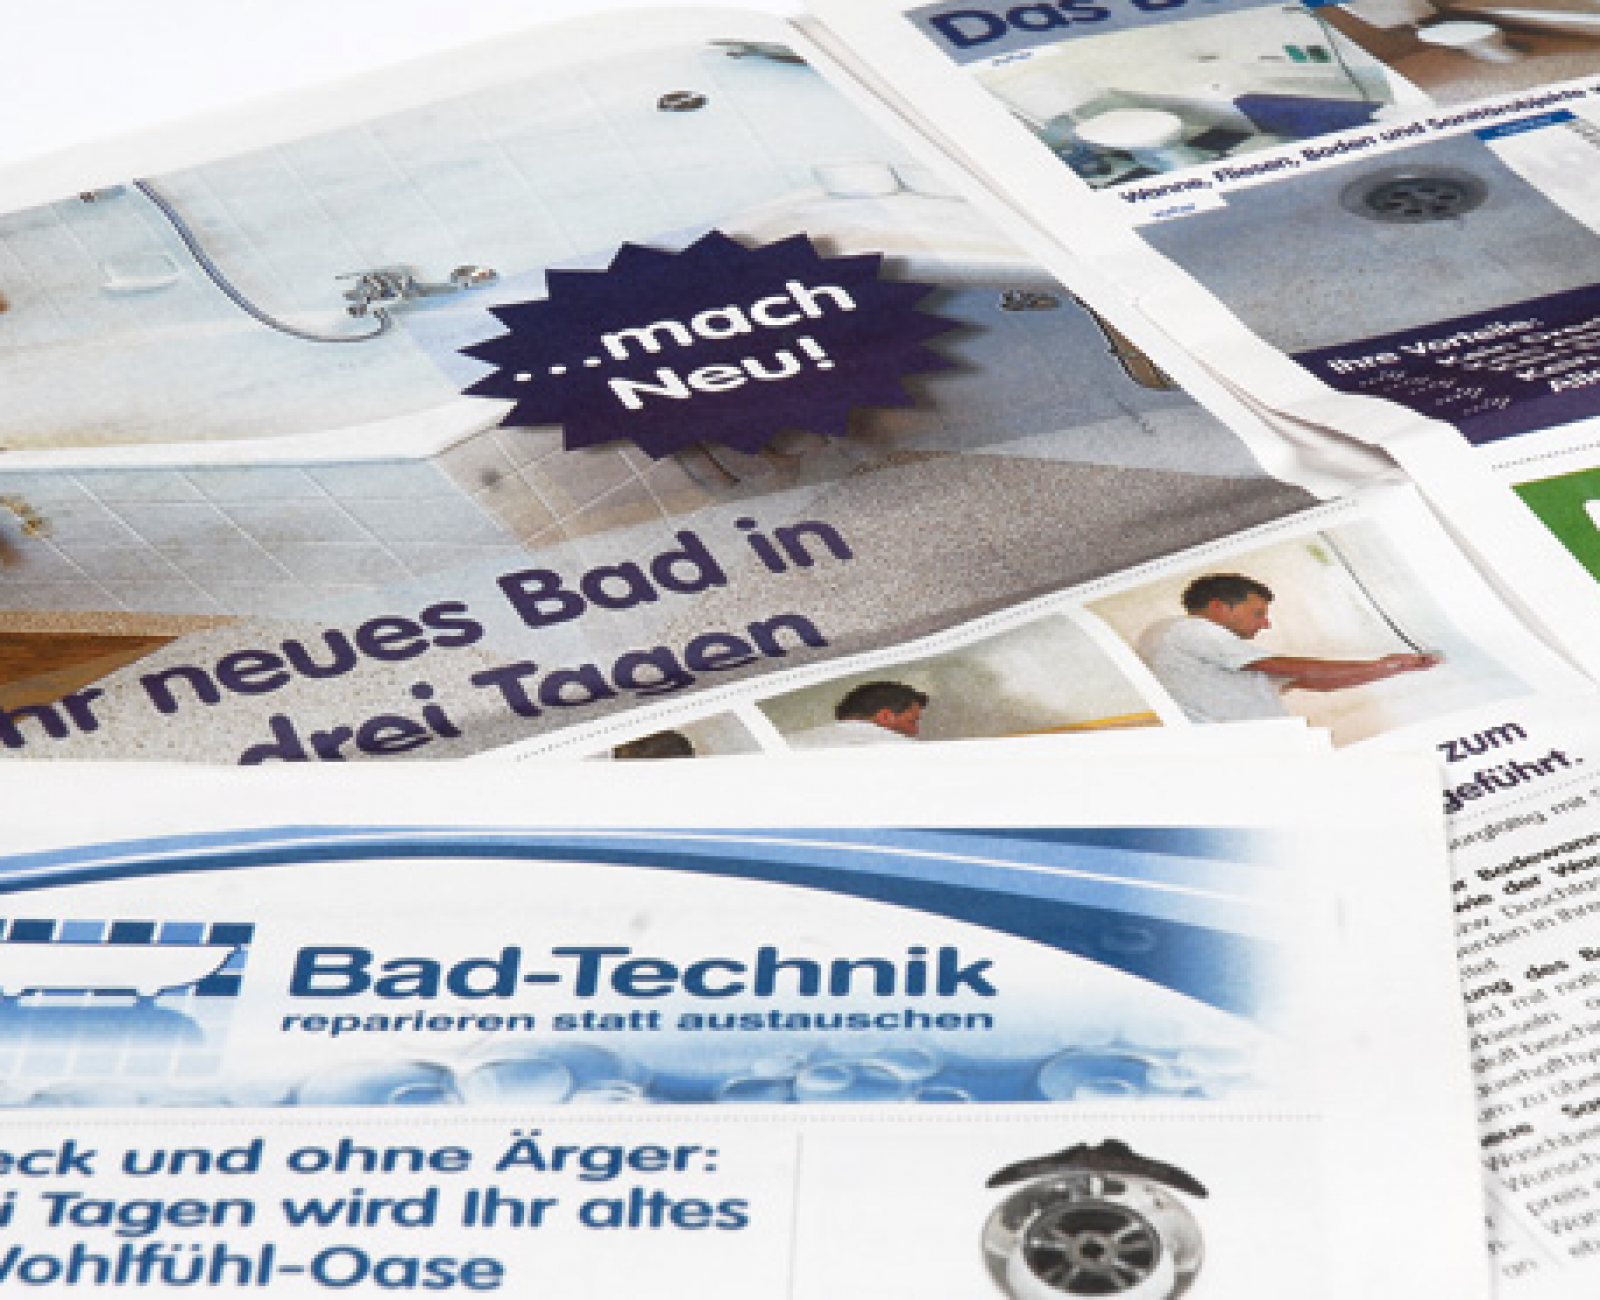 referenz_wordpress_together-concept-werbeagentur_bad-technik02